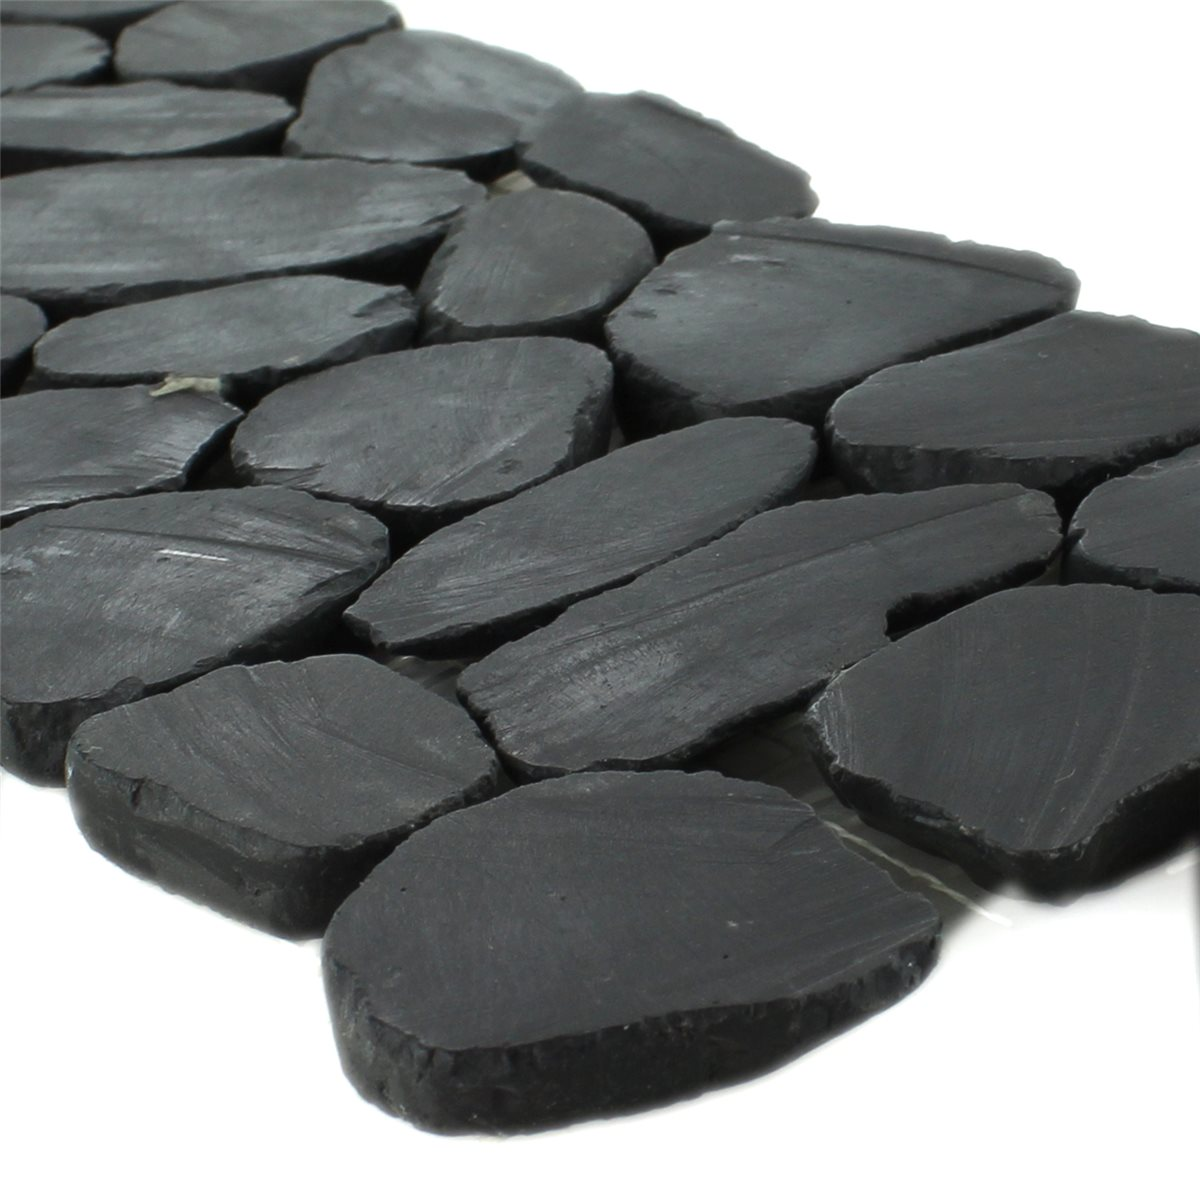 Flusskiesel bord re 10x30cm anthrazit pebble - Flusskiesel fliesen ...